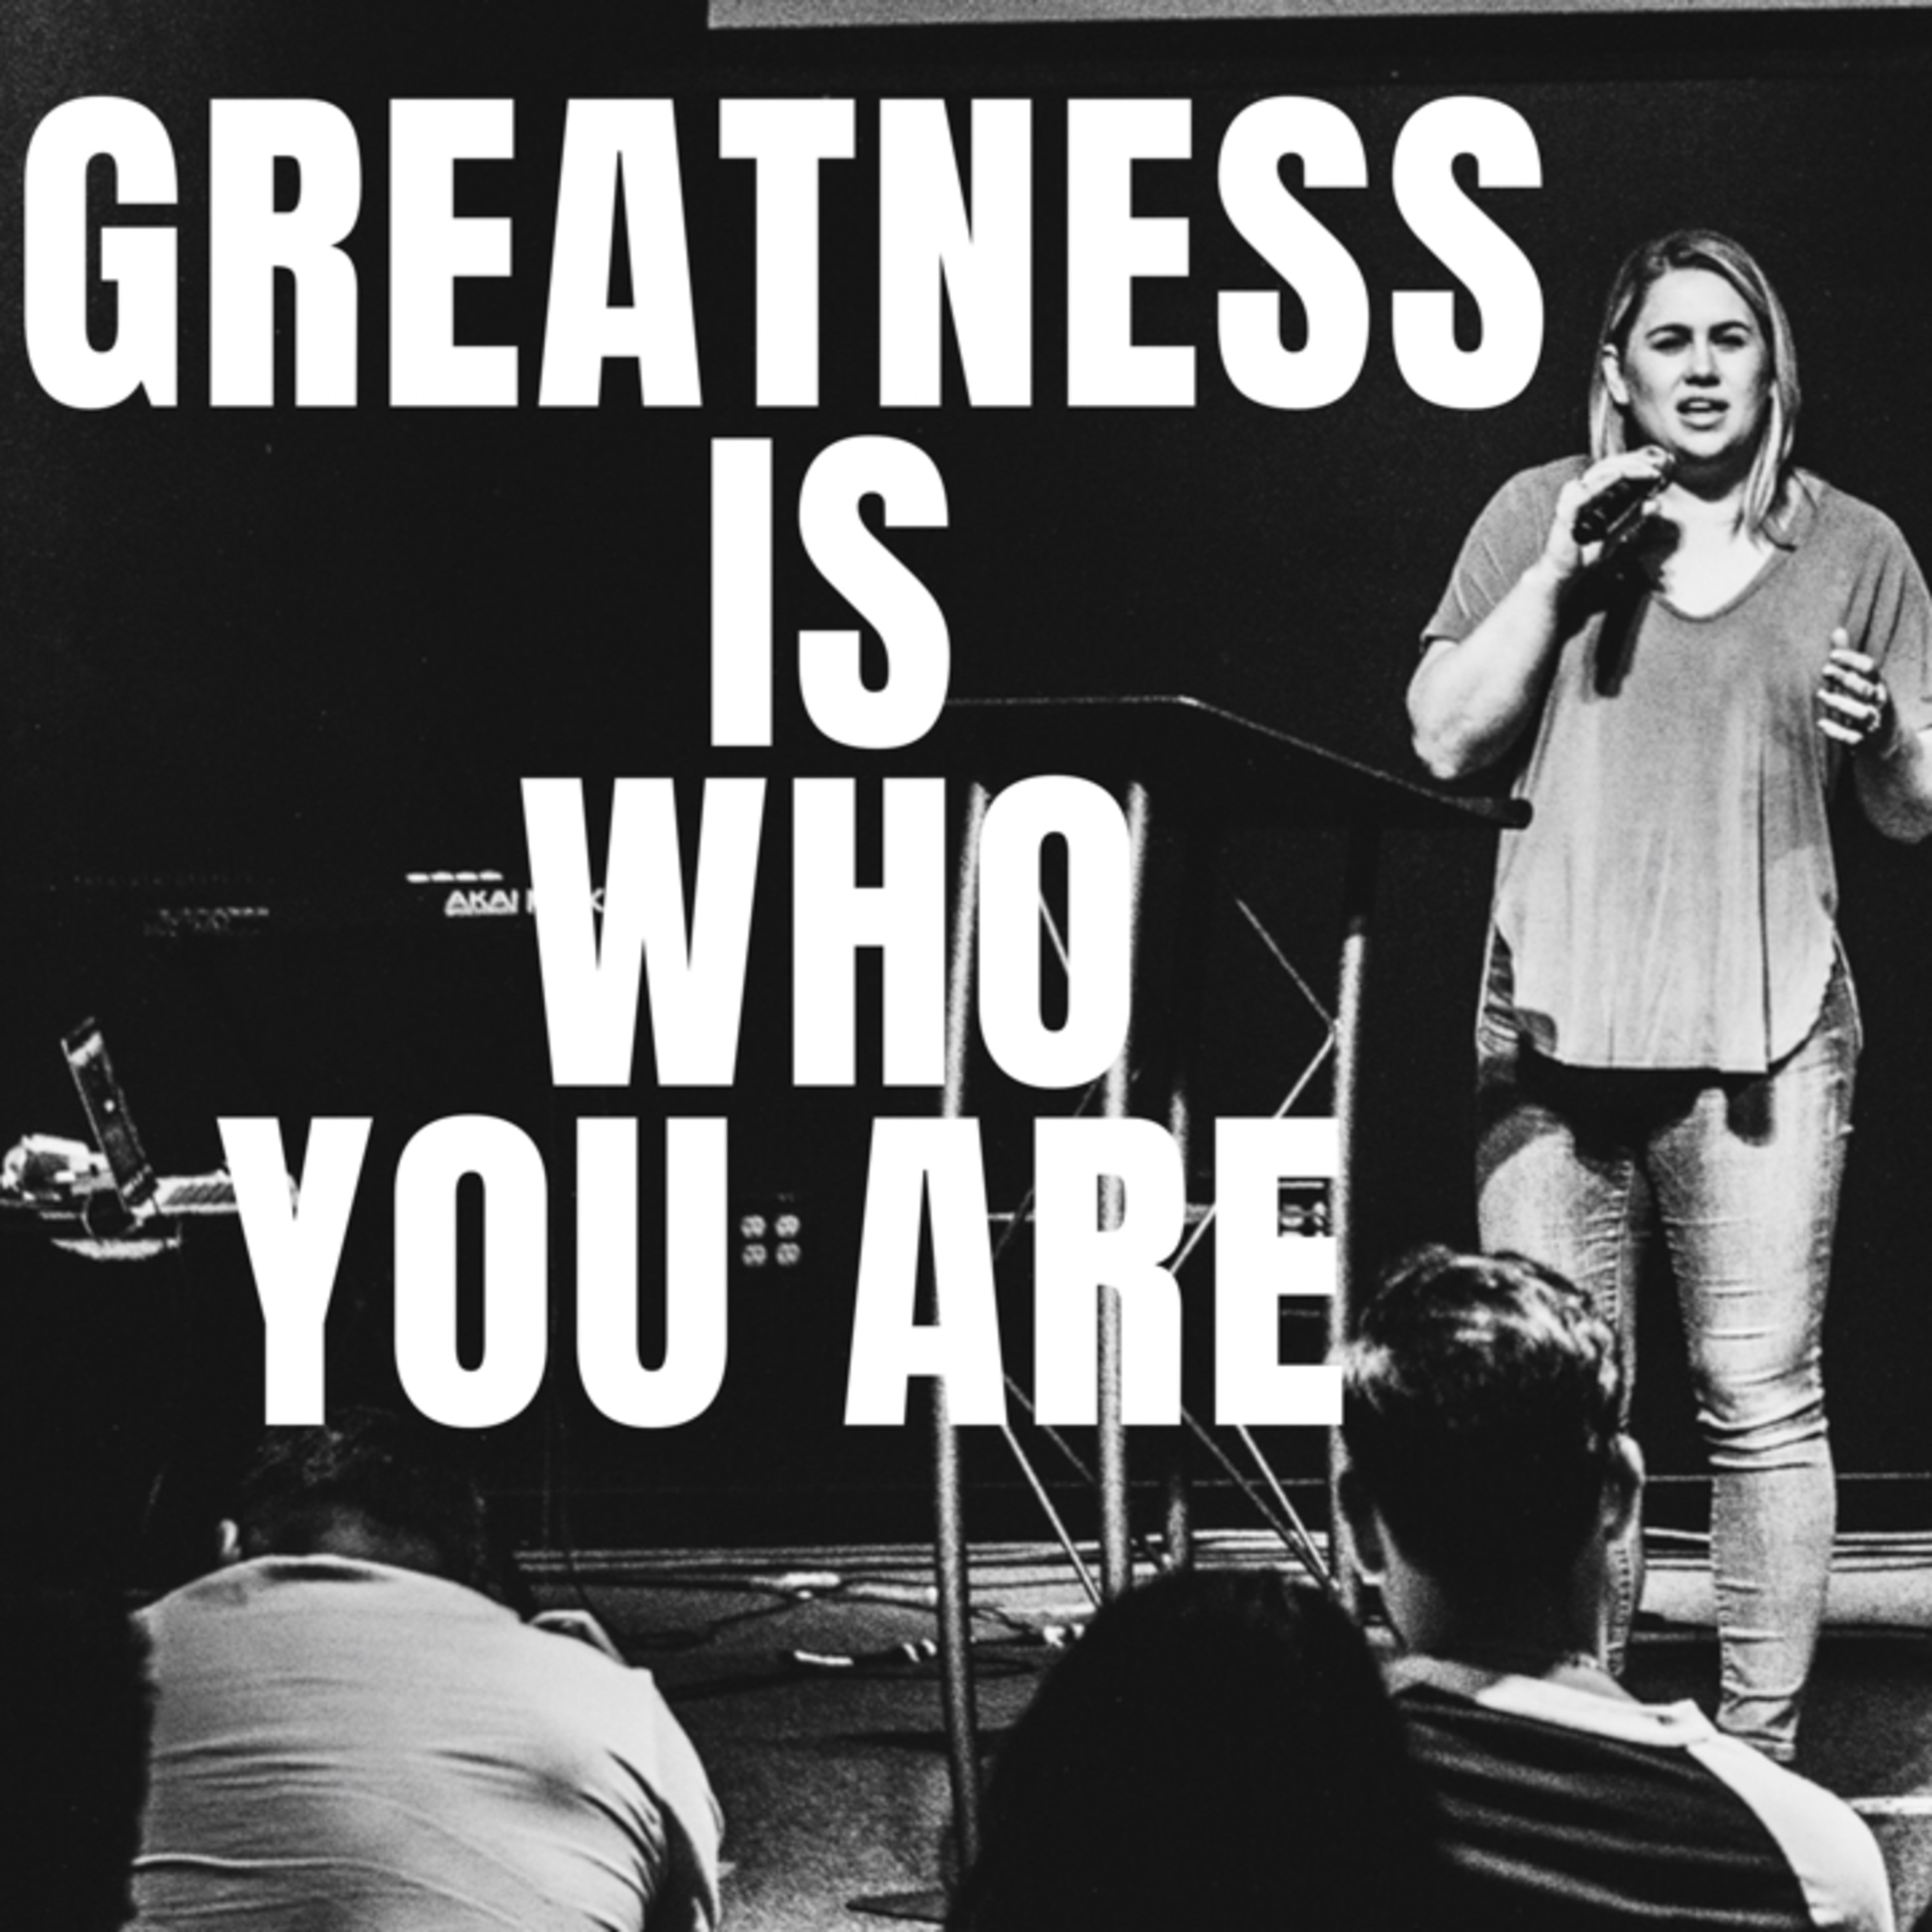 GREATNESS IS WHO YOU ARE